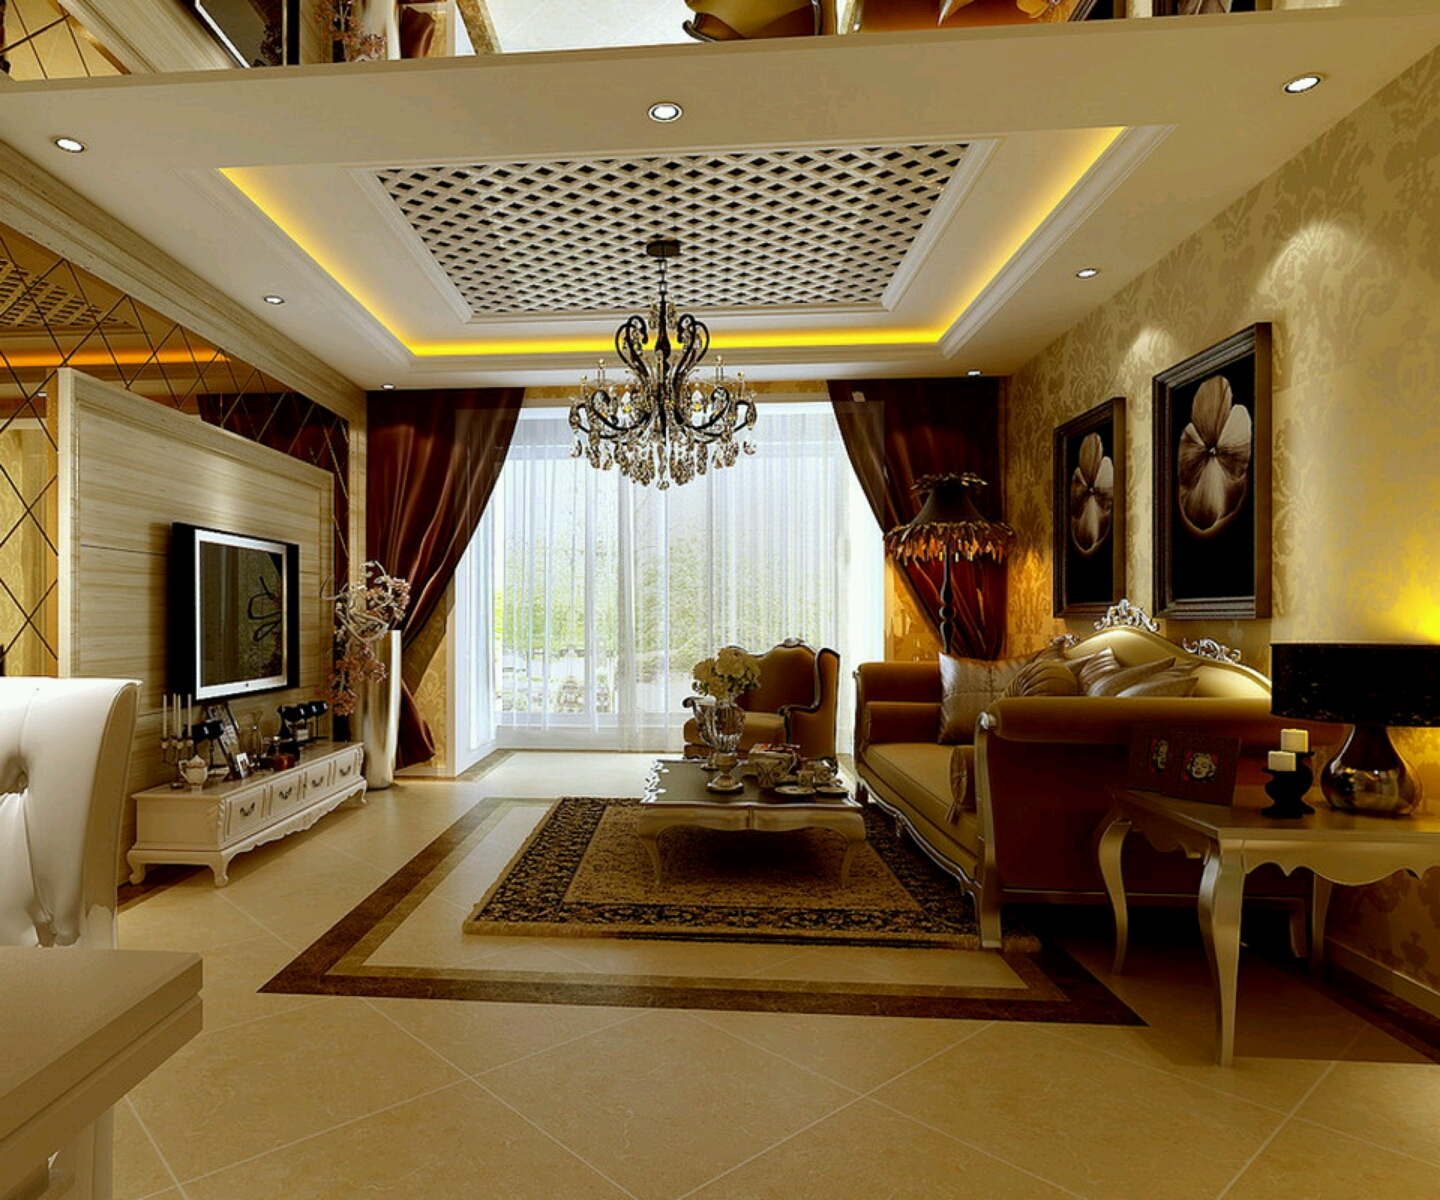 Luxury homes interior decoration living room designs ideas. | Huntto